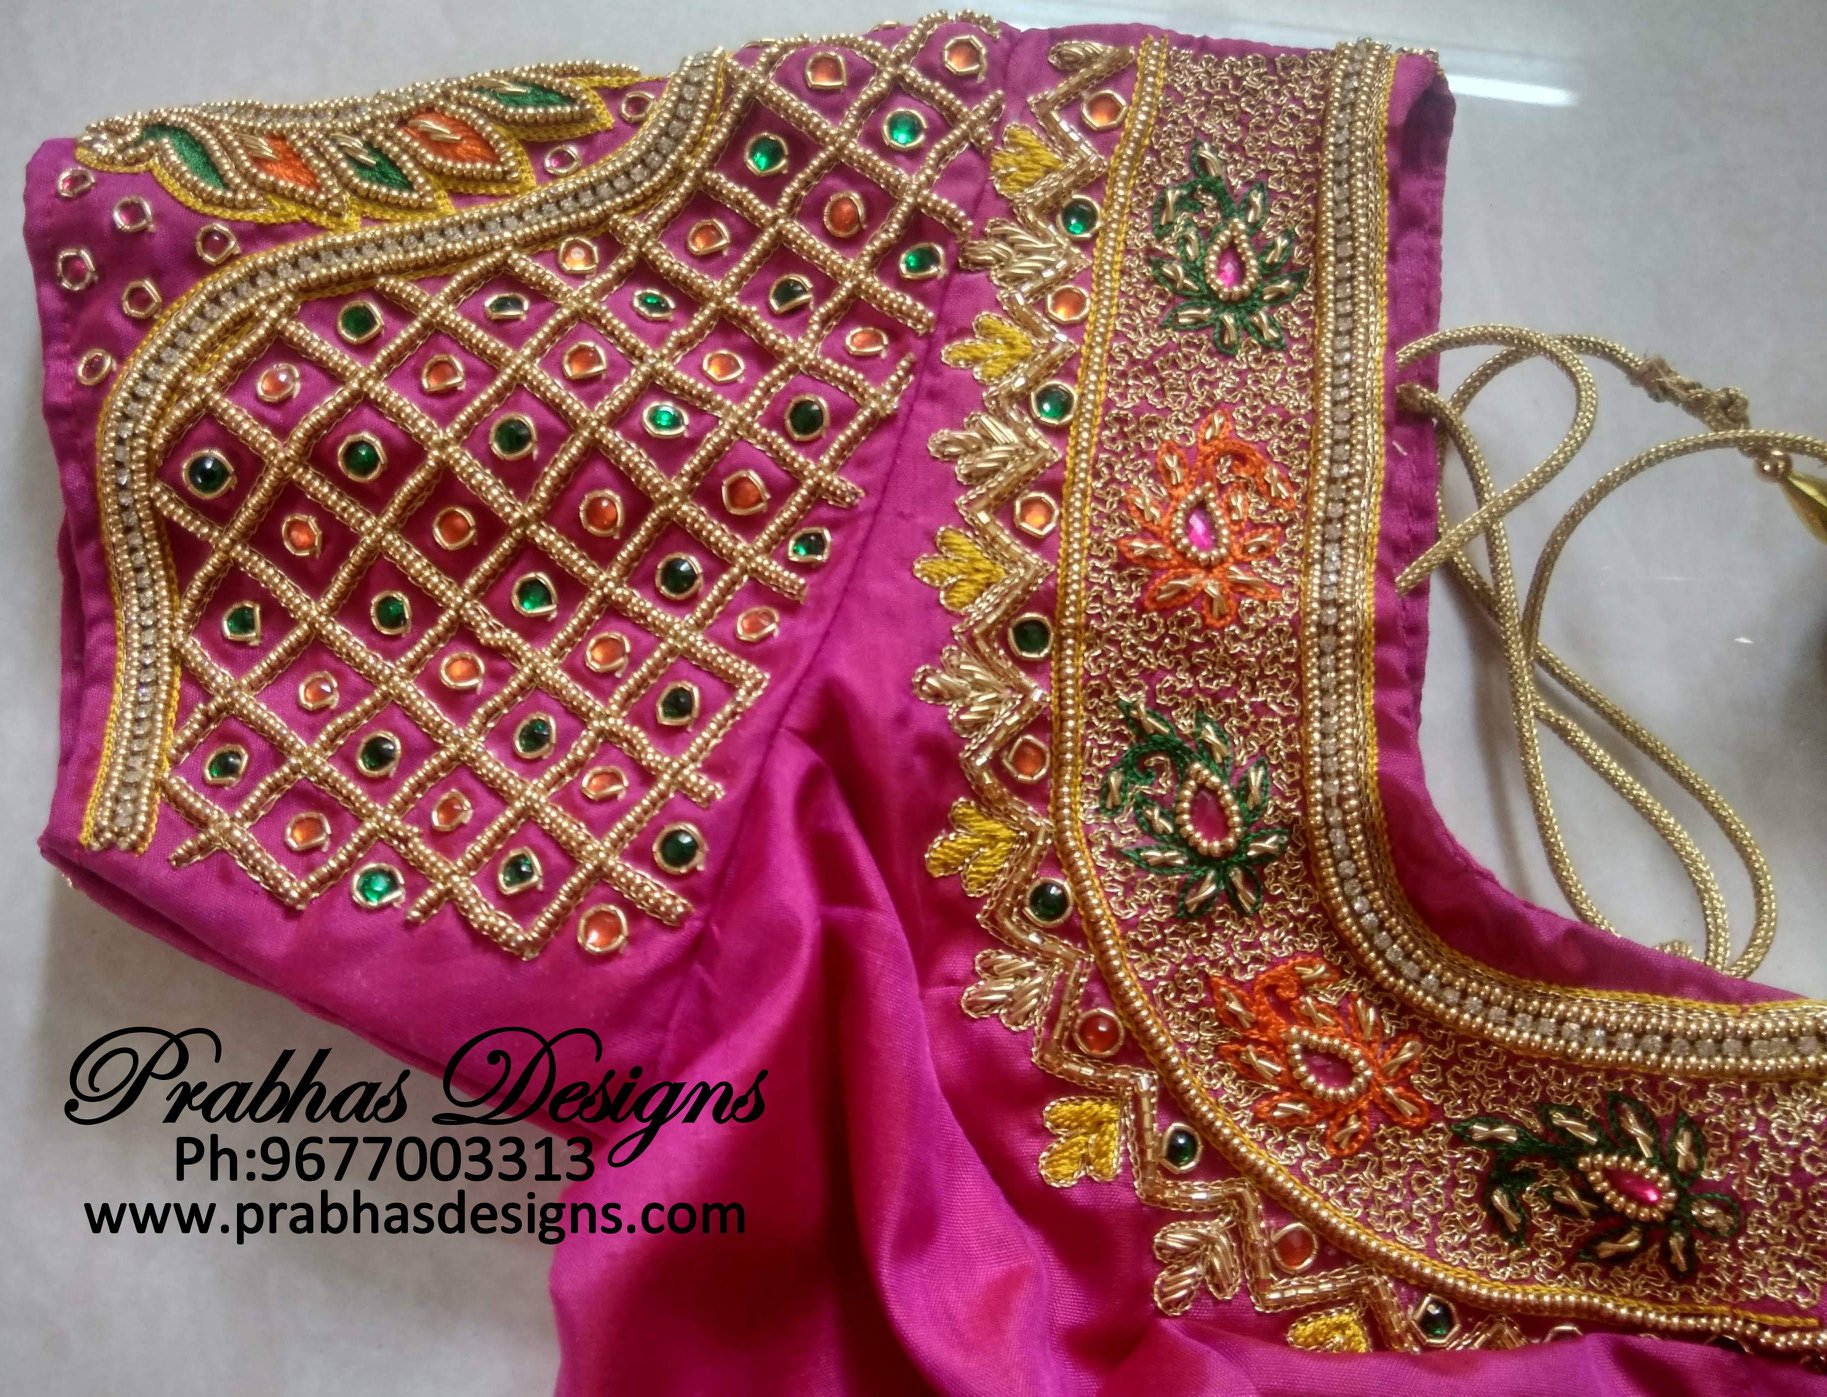 Best Aari Embroidery Classes Prabhas Designs 9677003313,Lace Simple Blouse Back Neck Designs Images